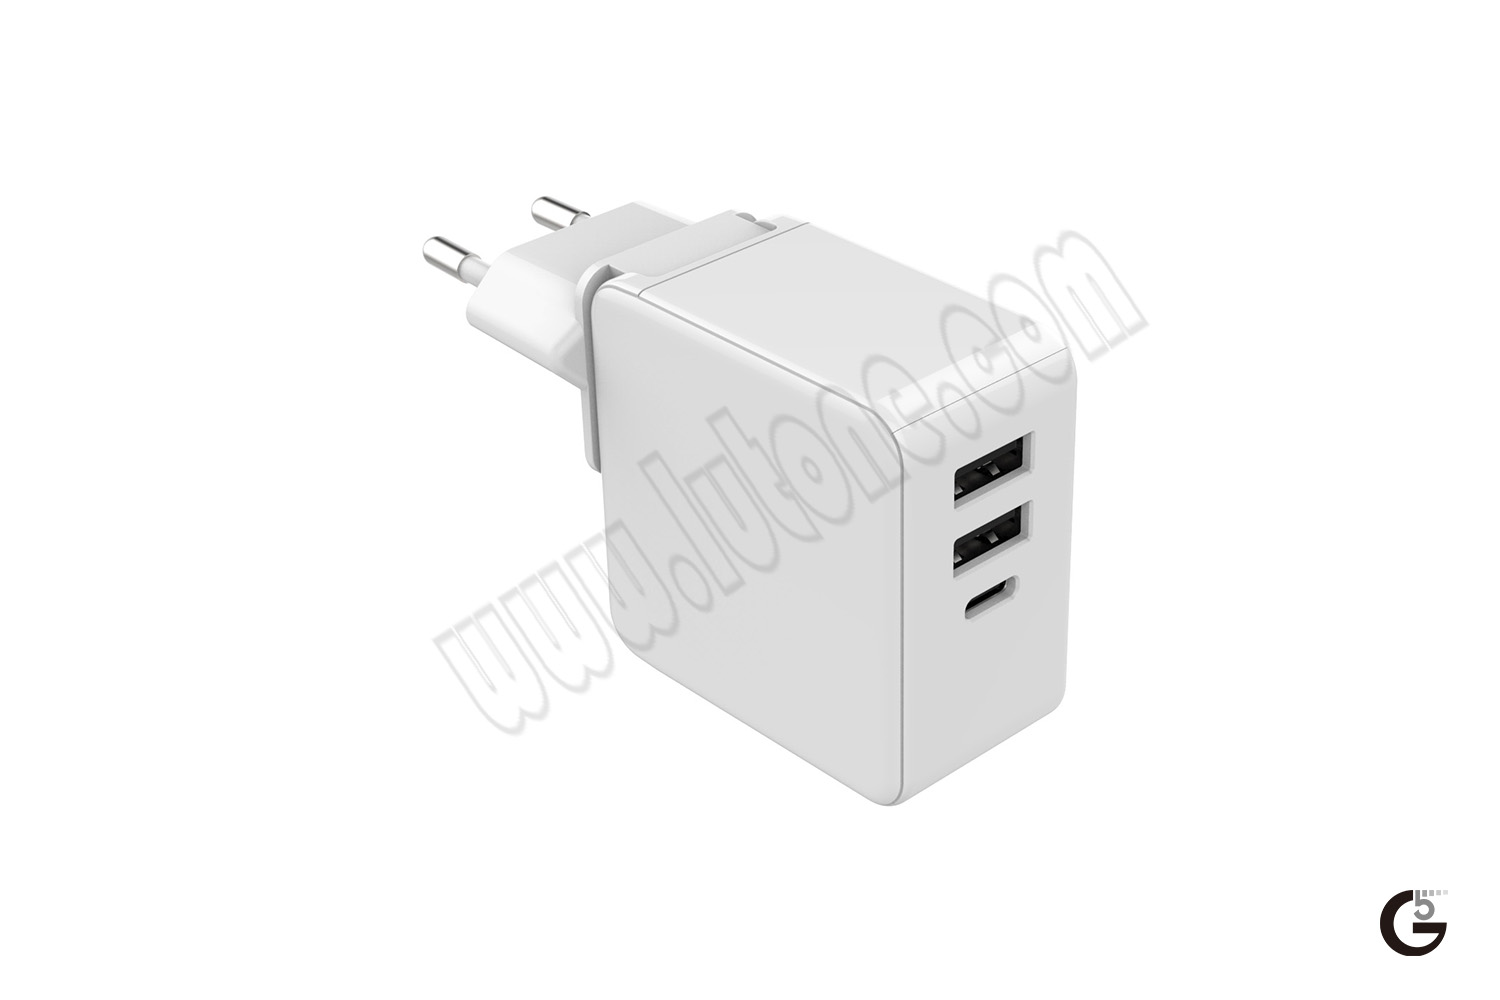 90W GaN Fast Charger